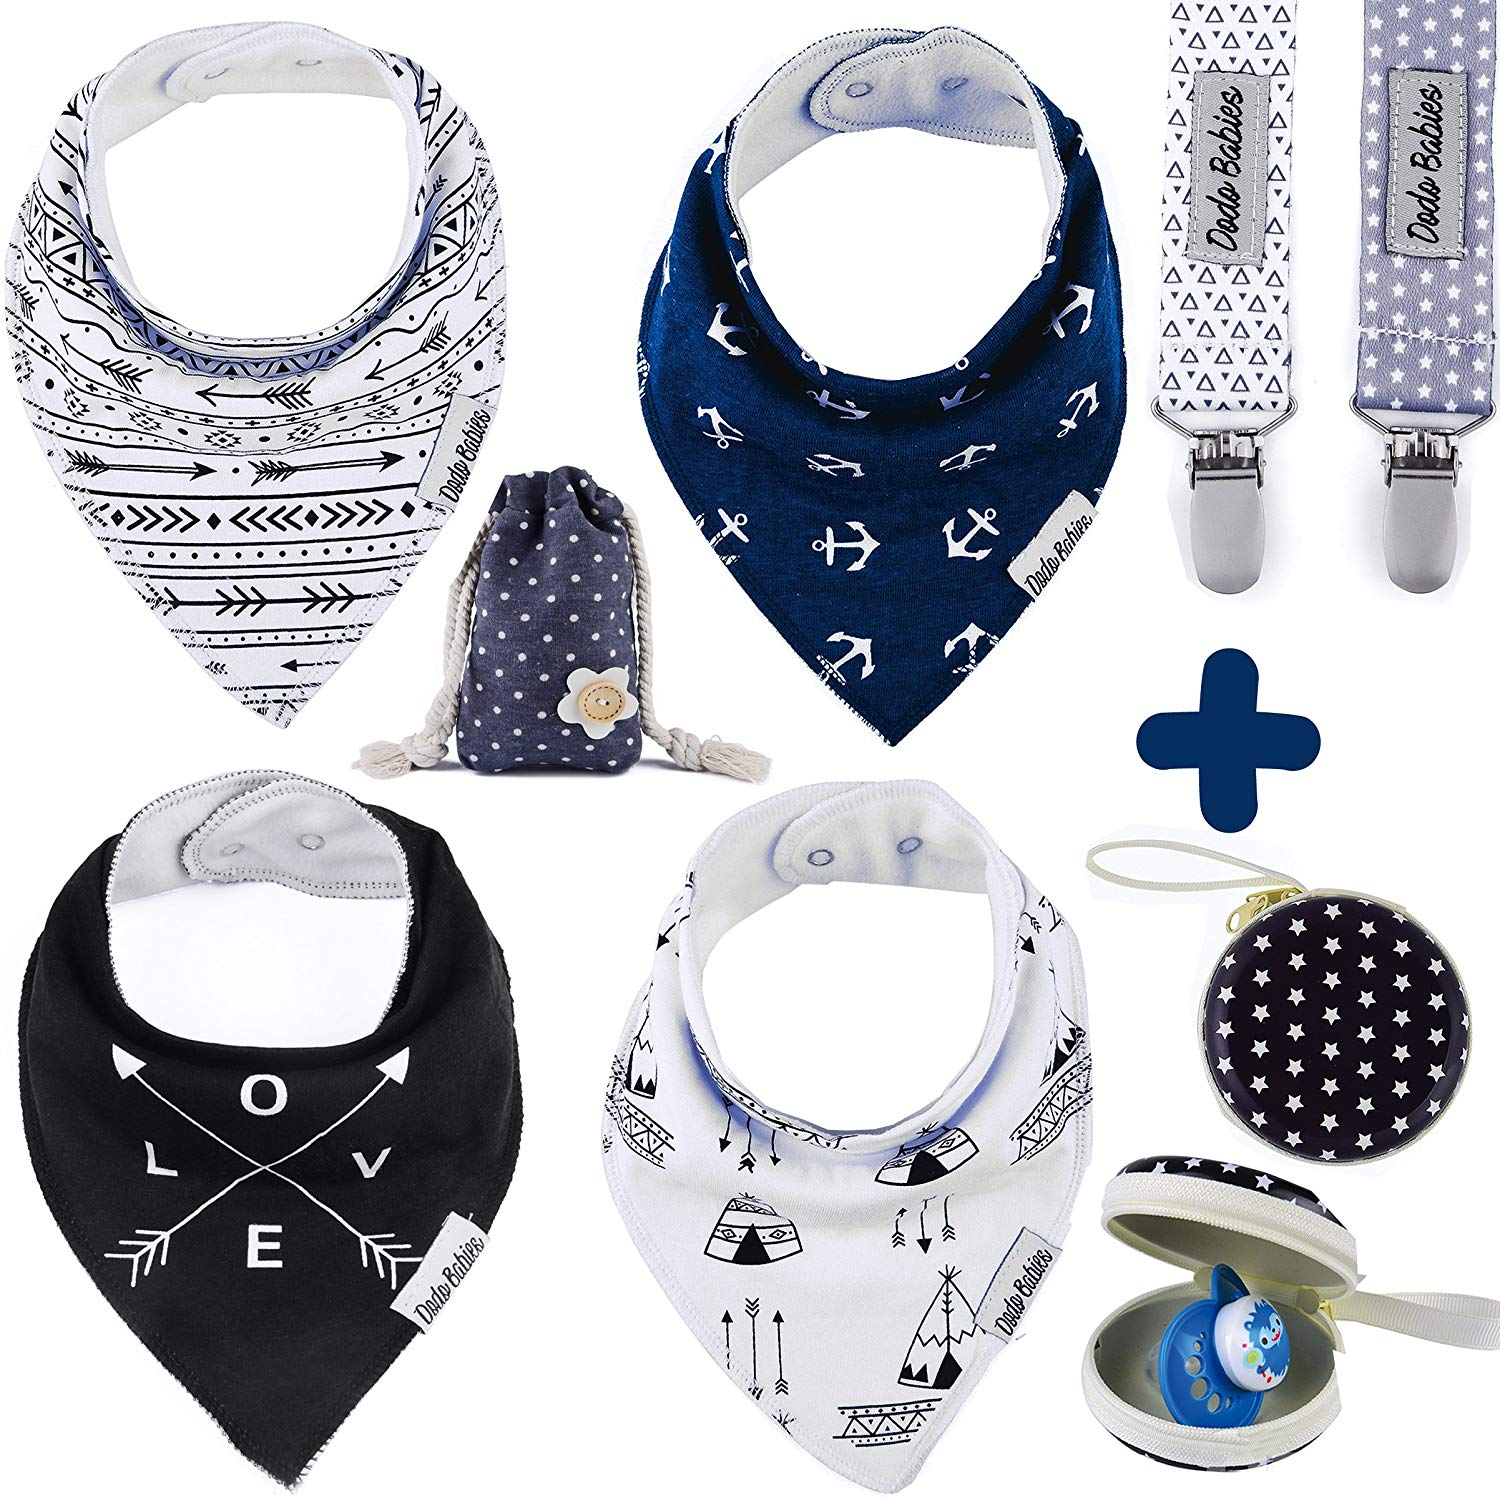 Baby Bandana Drool Bibs  + 2 Pacifier Clips + Pacifier Case in a Gift Bag,